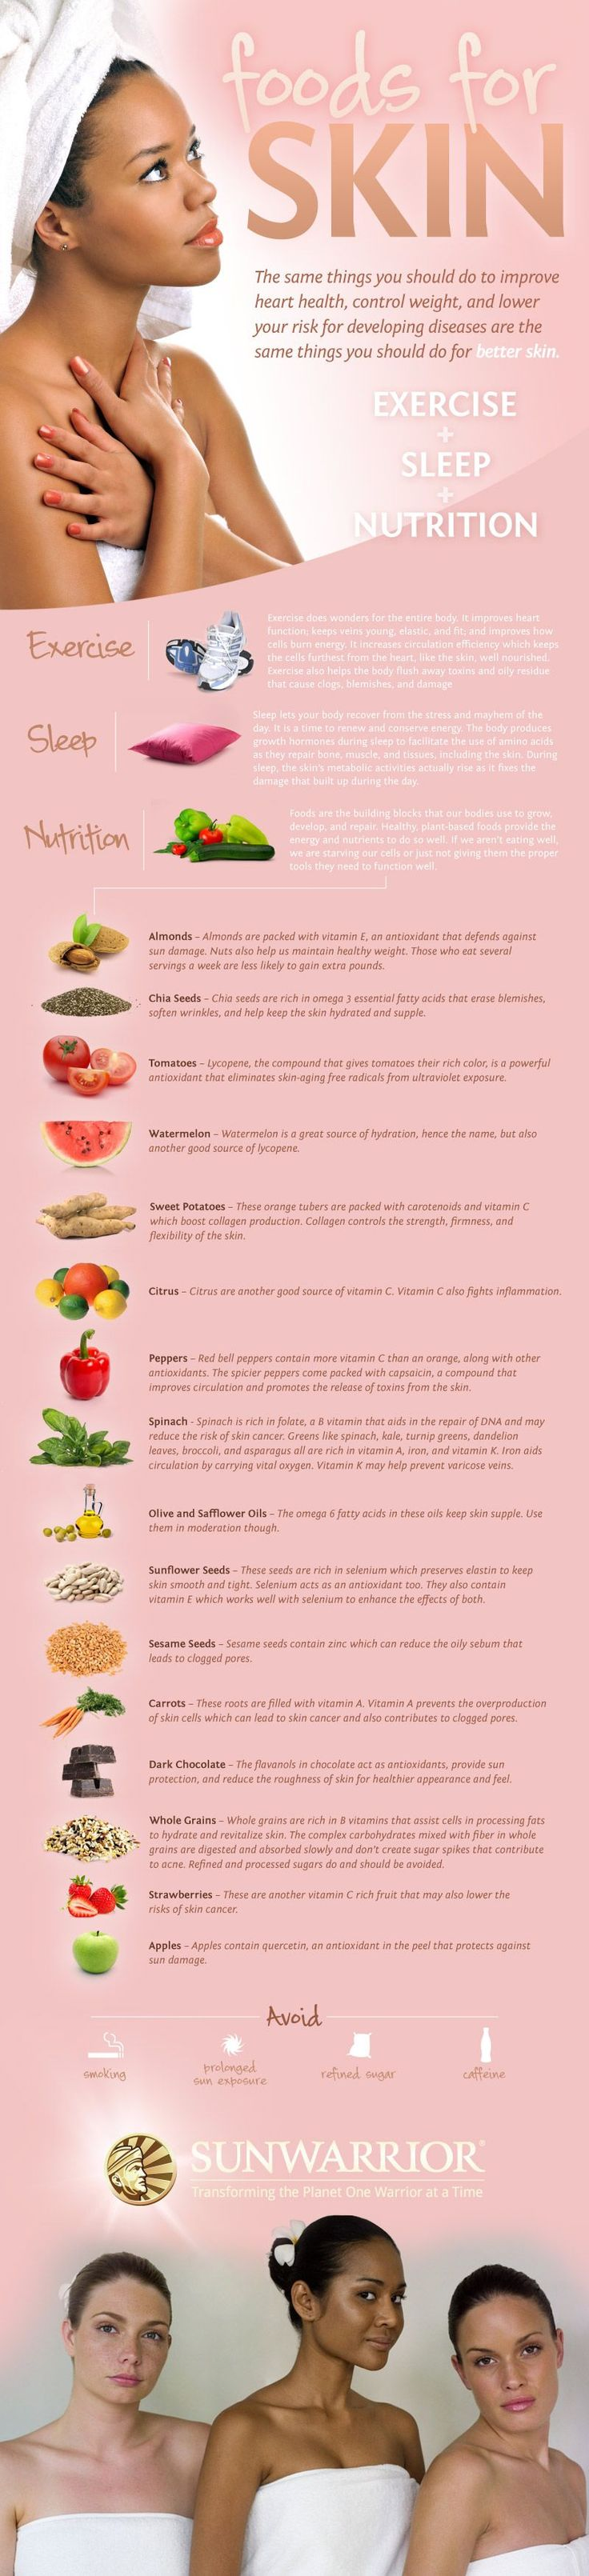 "Foods for Skin... Did they say ""Exercise!"""